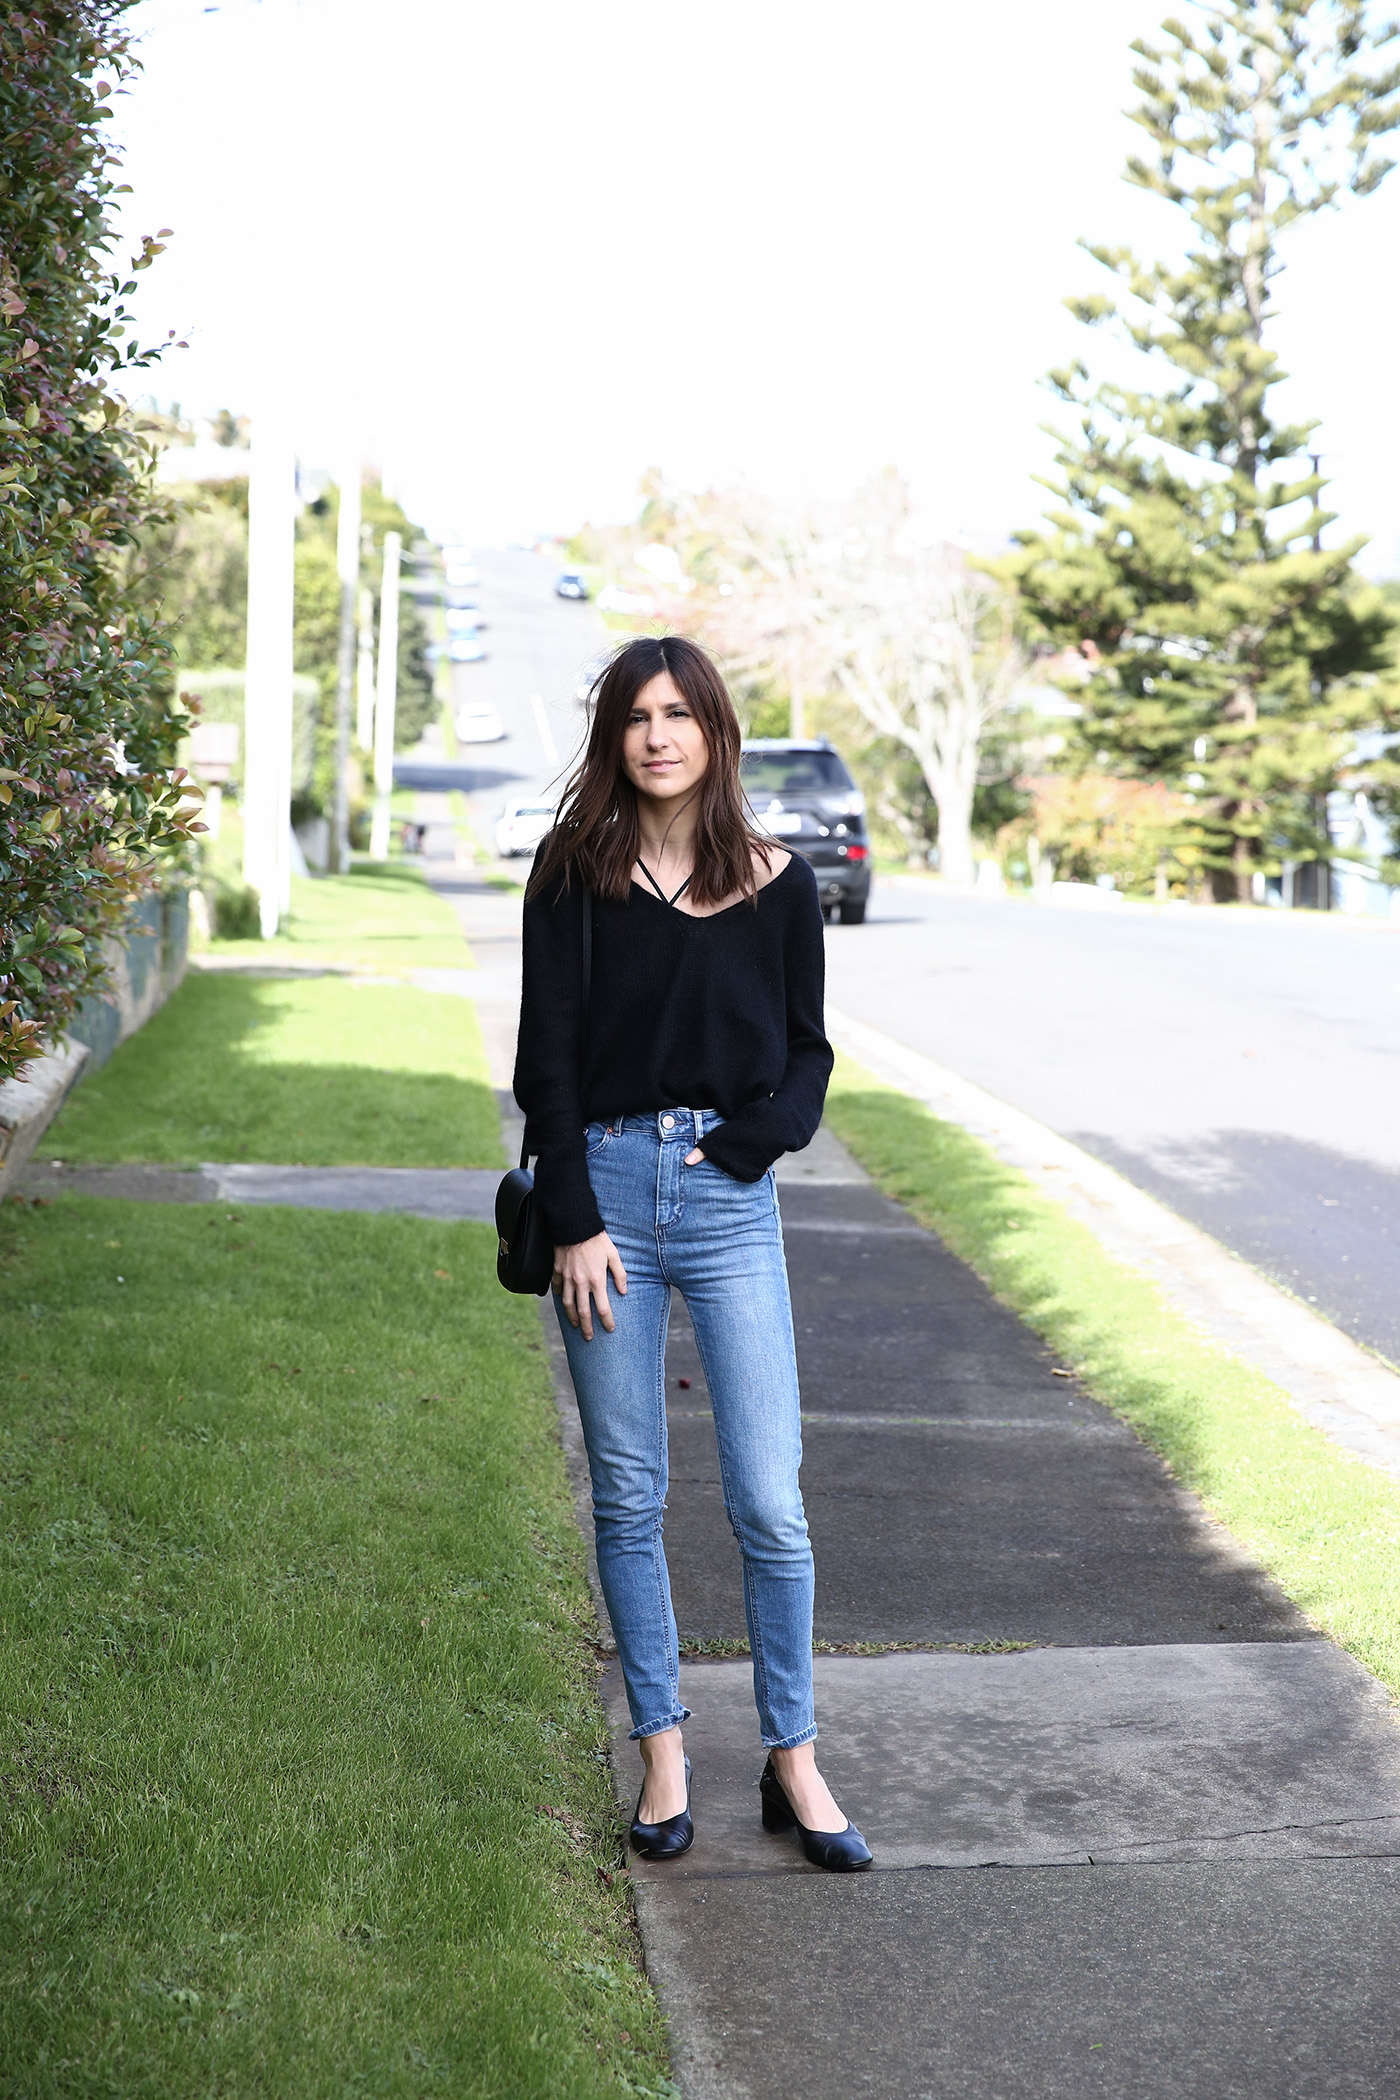 minimal outfit wearing sweater and jeans